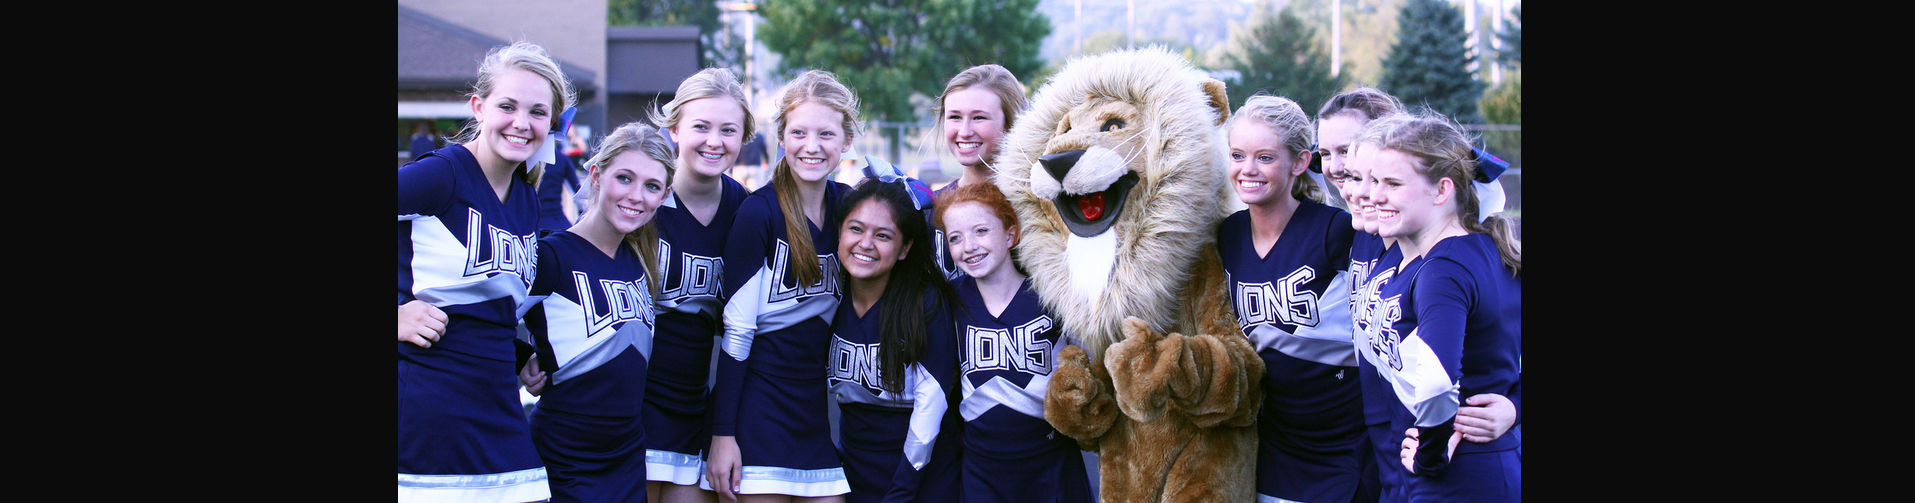 Des Moines Christian School Football Cheerleaders and Lion Mascot